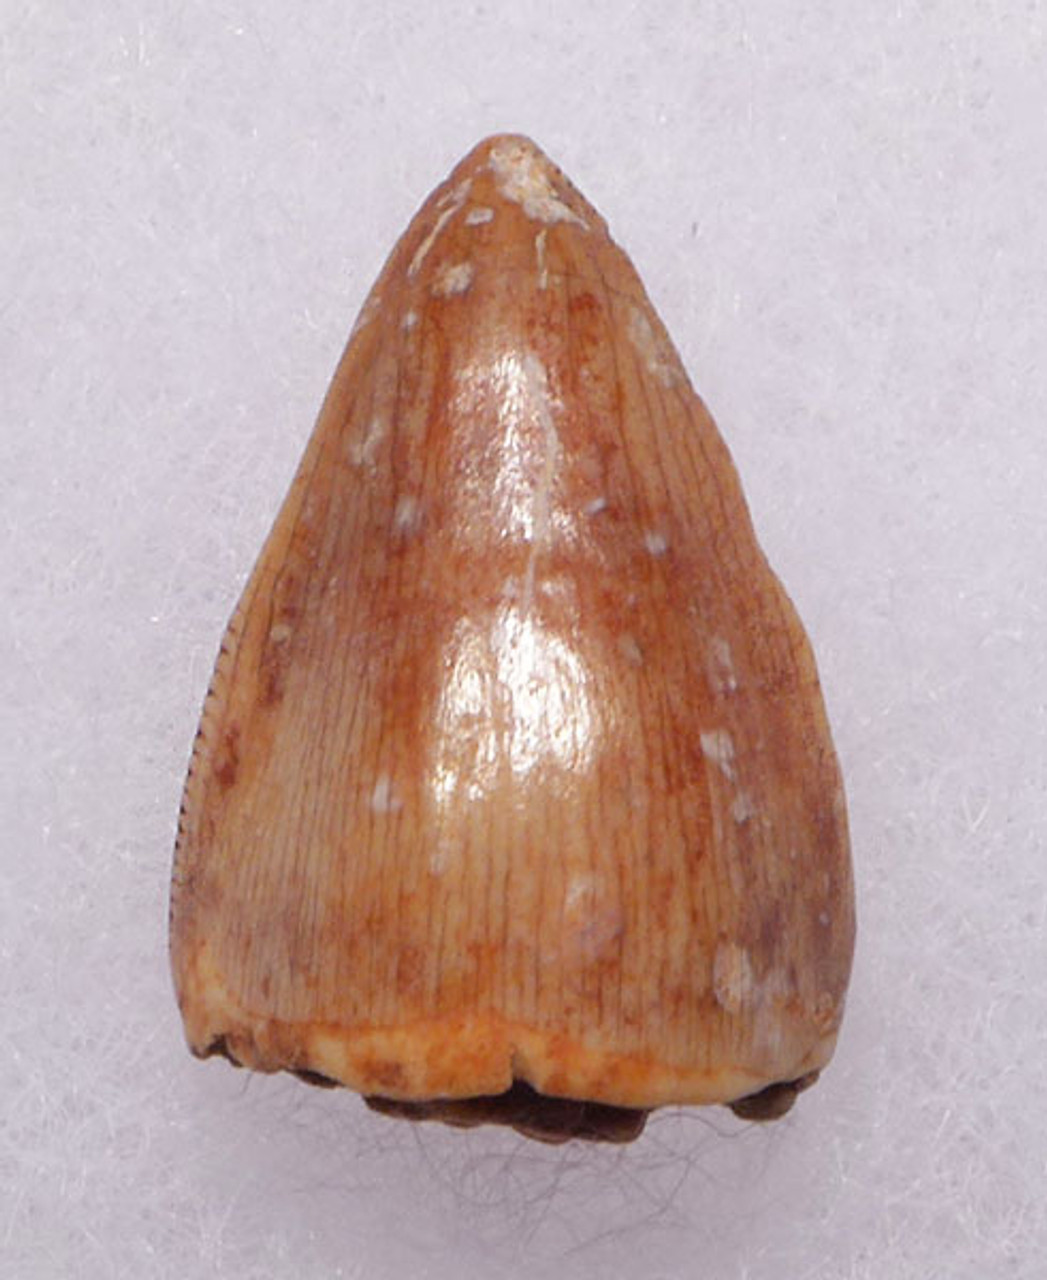 DT12-048 - TRIASSIC-ERA RUTIODON PHYTOSAUR LATERAL TOOTH IN FINEST PRESERVATION